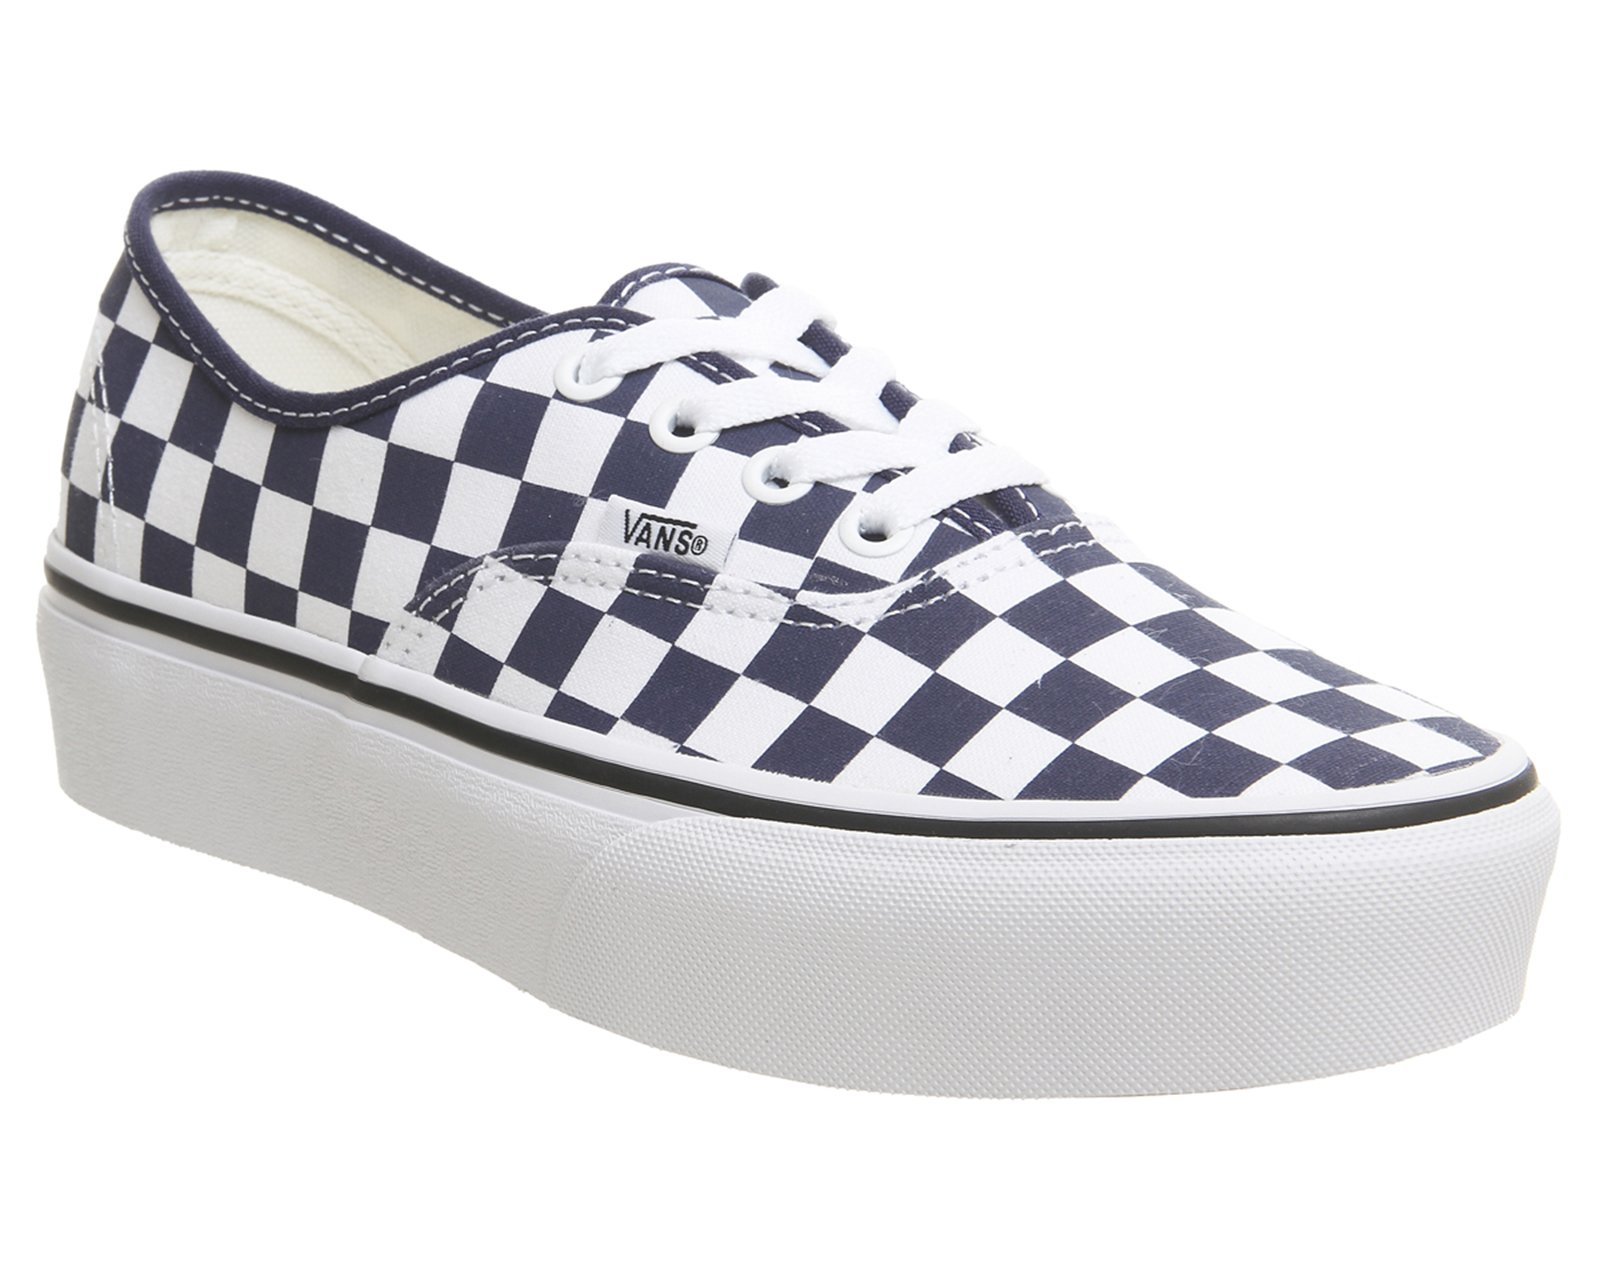 Sentinel Womens Vans Authentic Platforms Medieval Blue True White  Checkerboard Trainers S 36bd2a0c9c